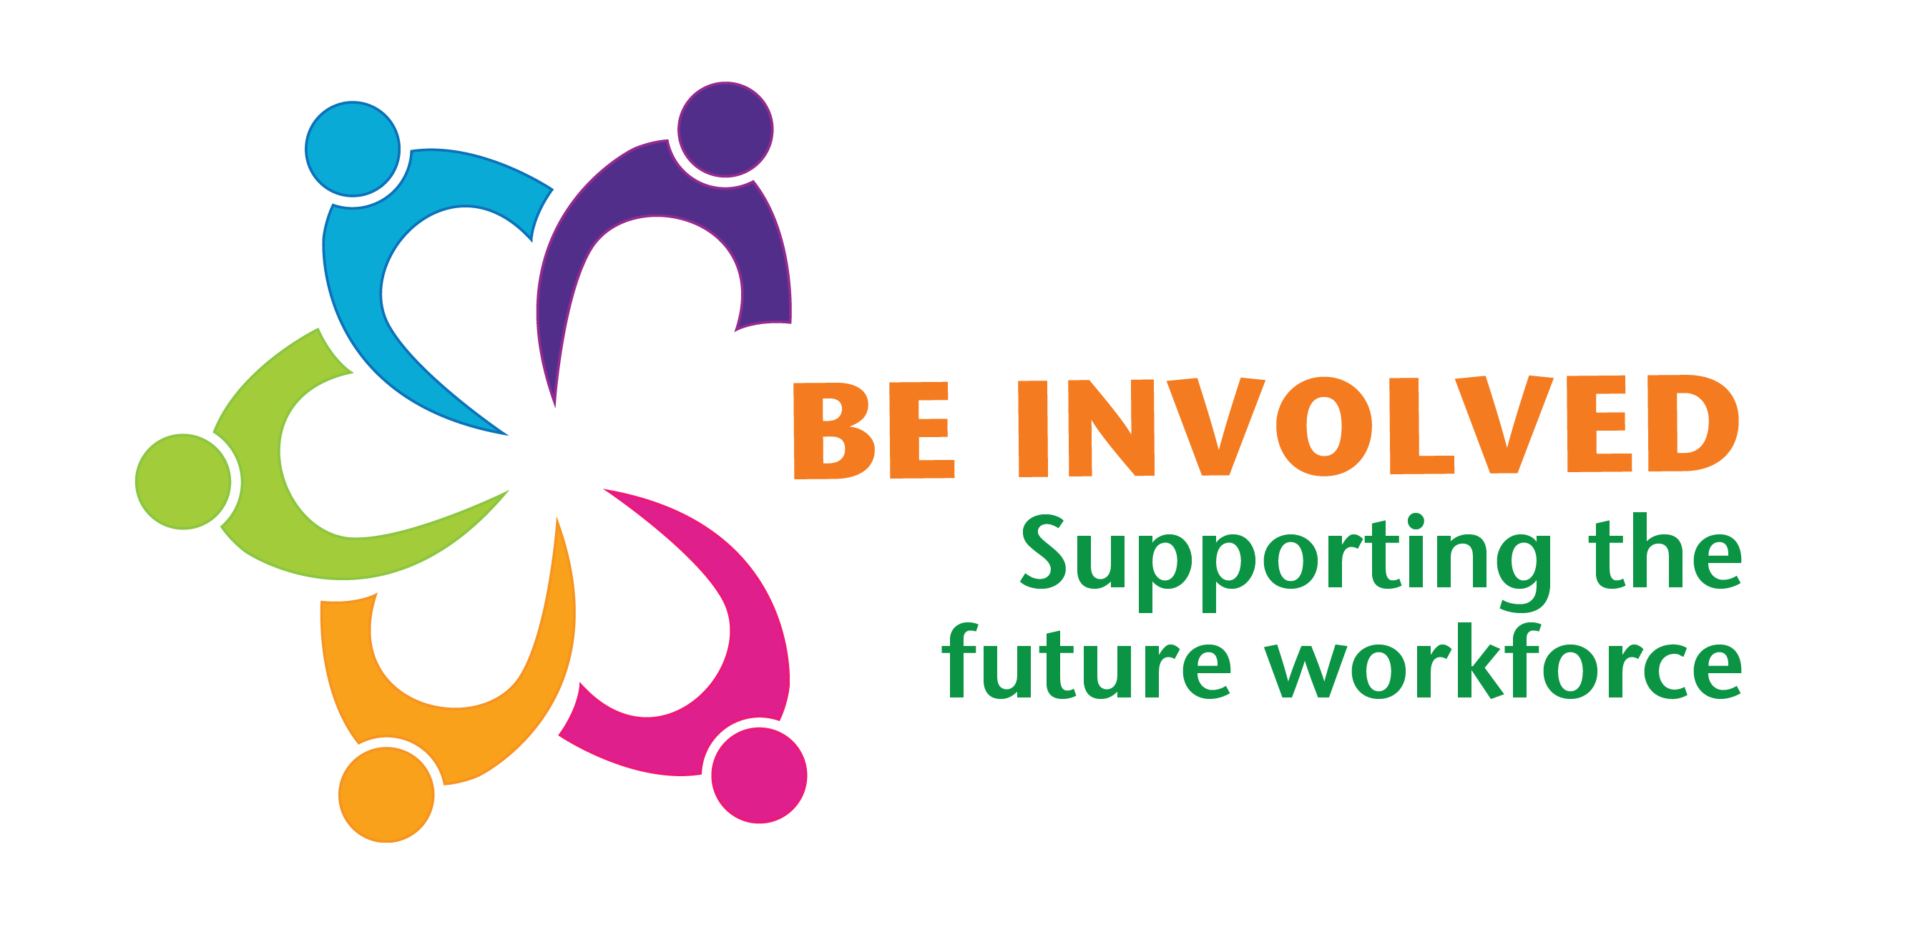 Be Involved logo which says supporting the future workforce